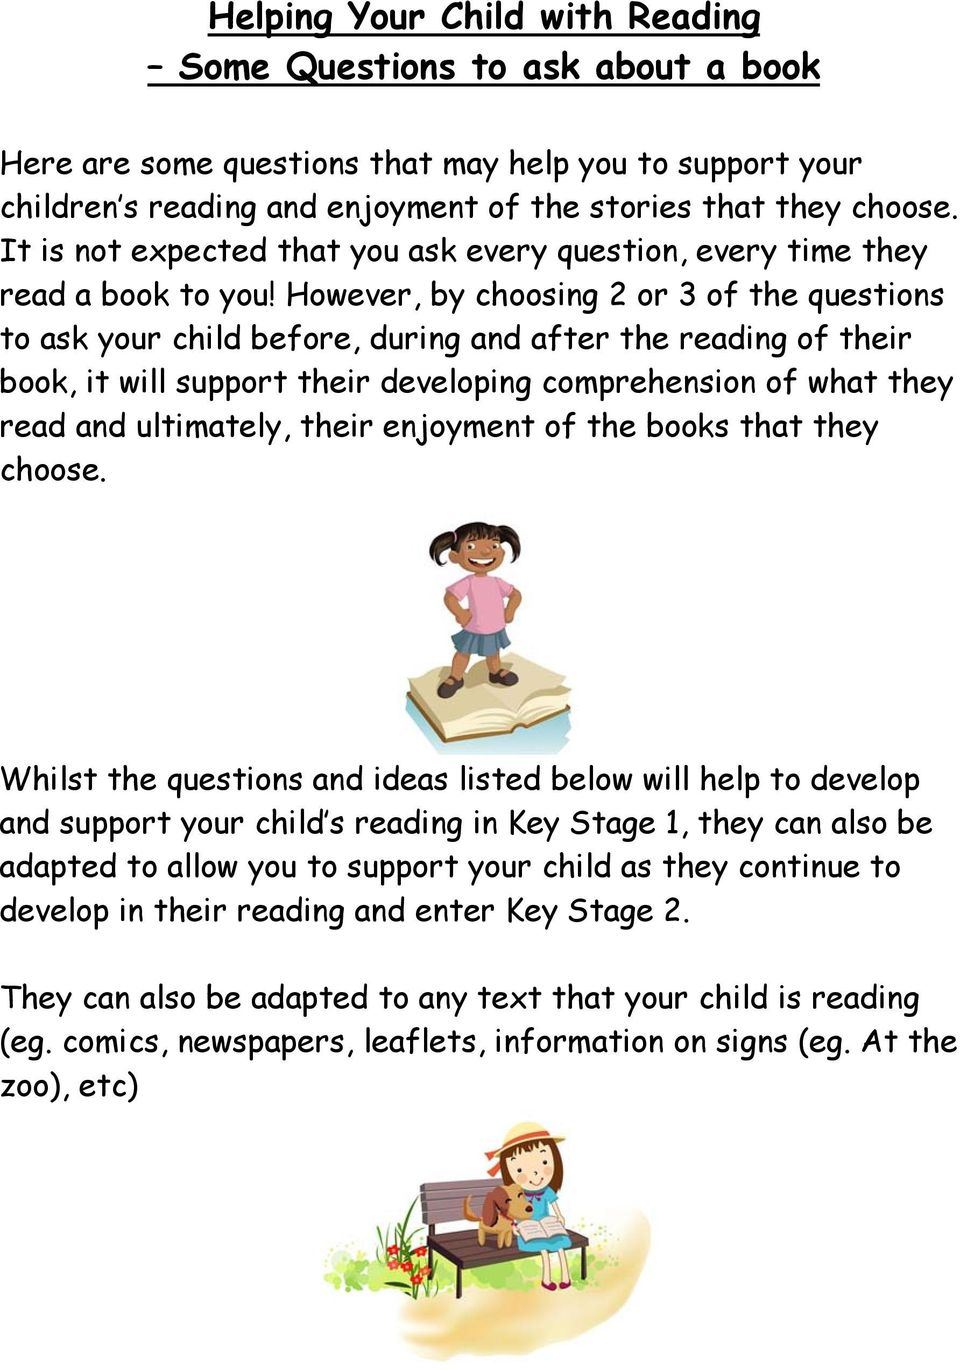 However, by choosing 2 or 3 of the questions to ask your child before, during and after the reading of their book, it will support their developing comprehension of what they read and ultimately,